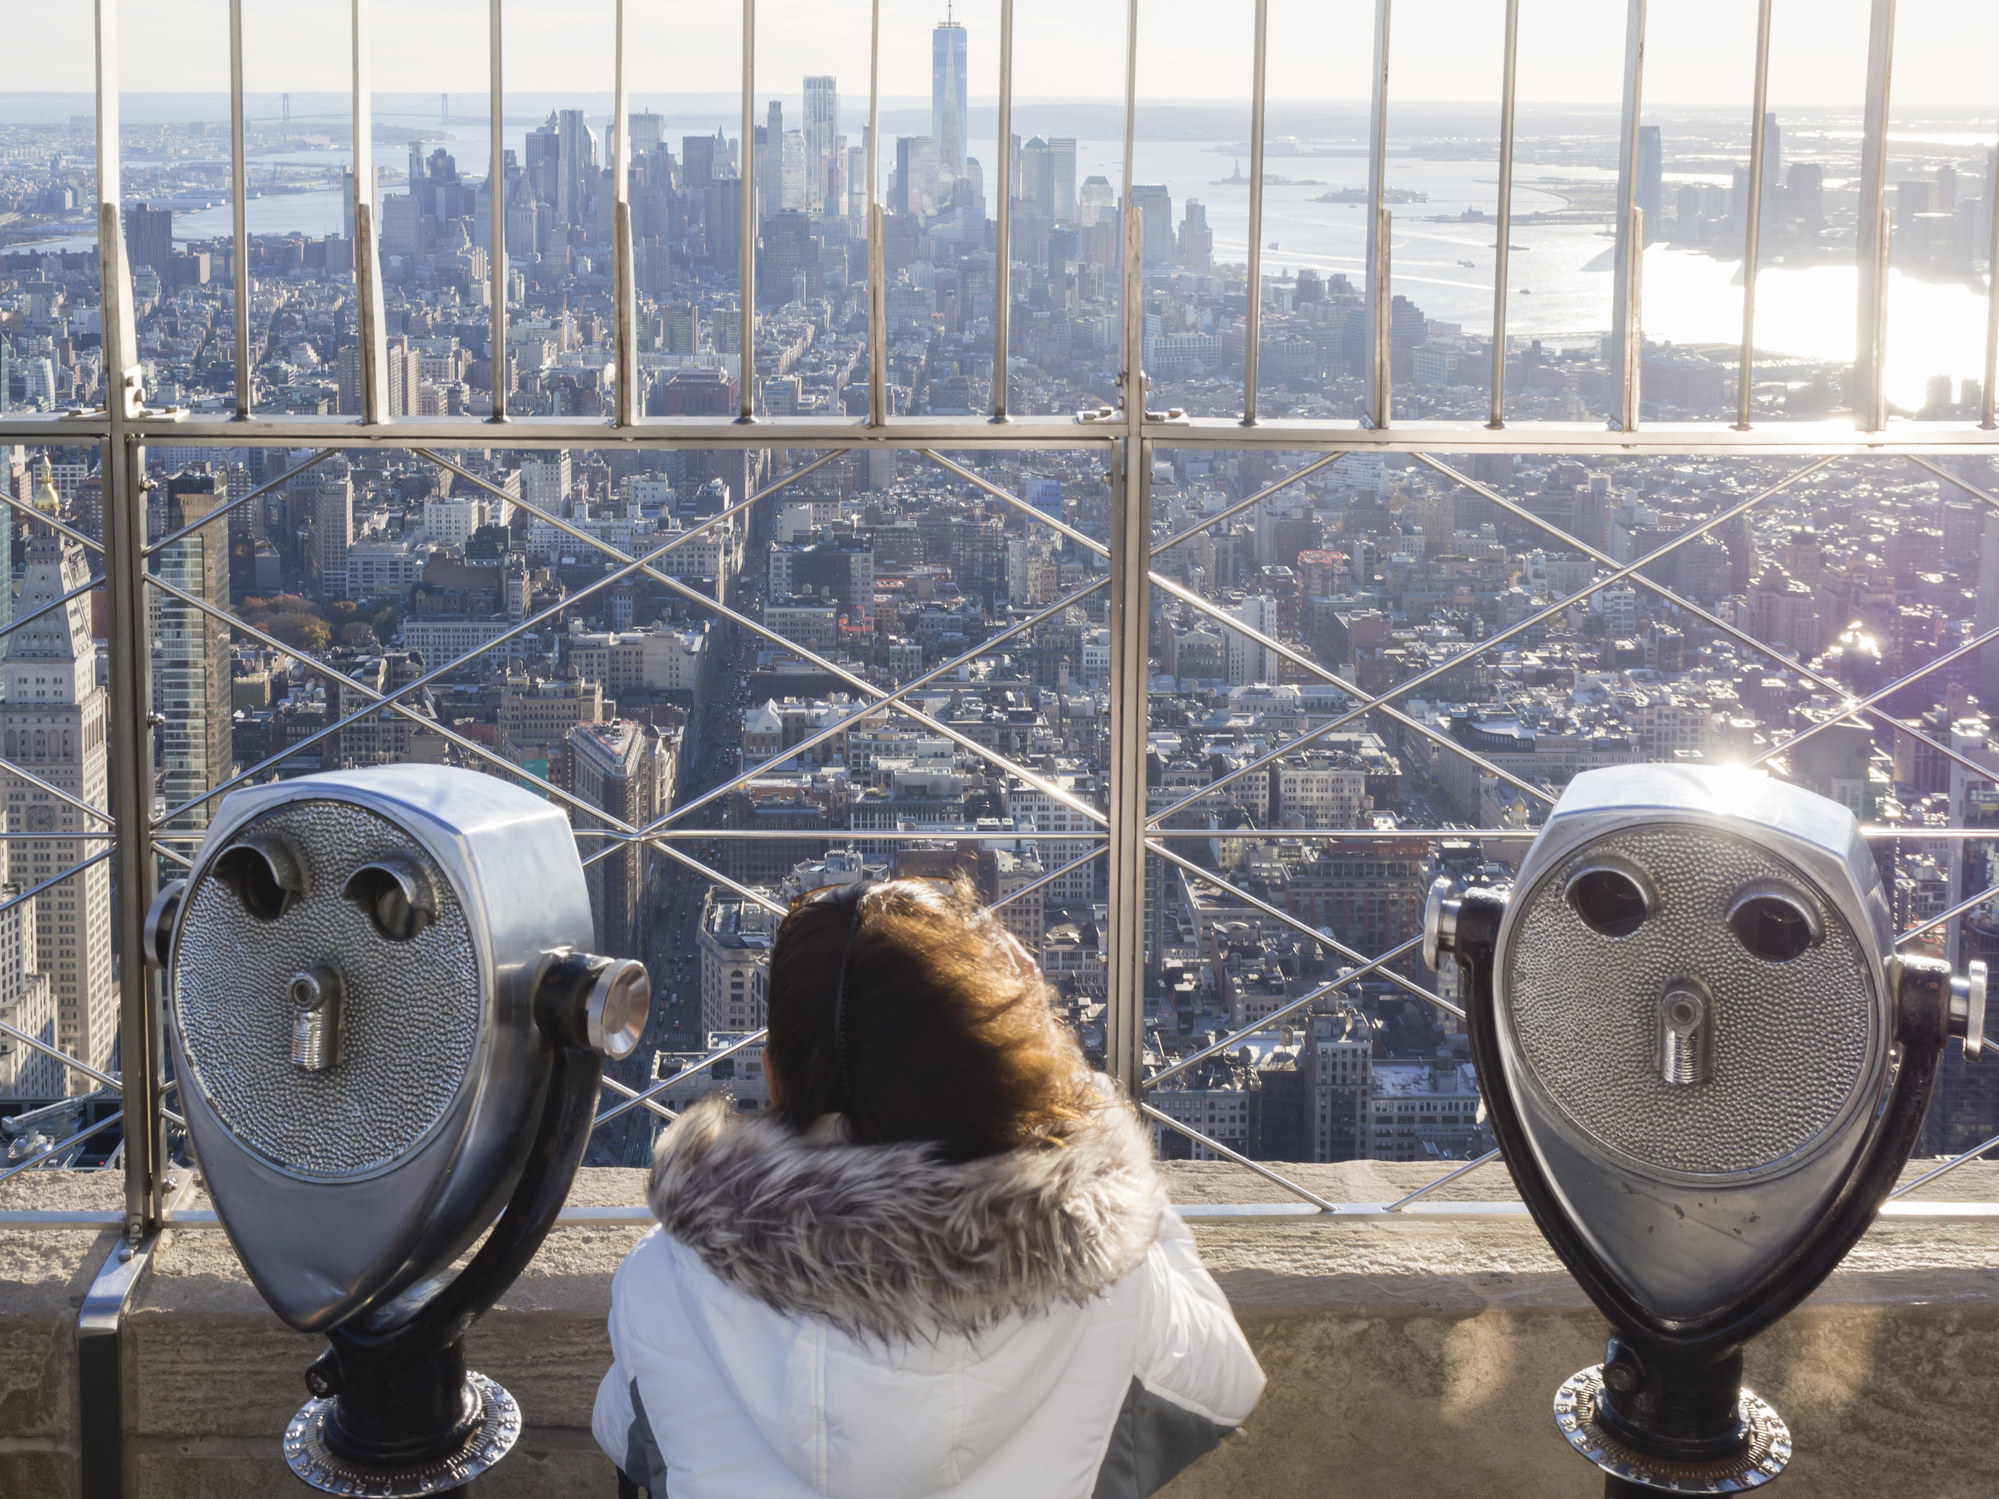 A tourist on the top of the Empire State Building.